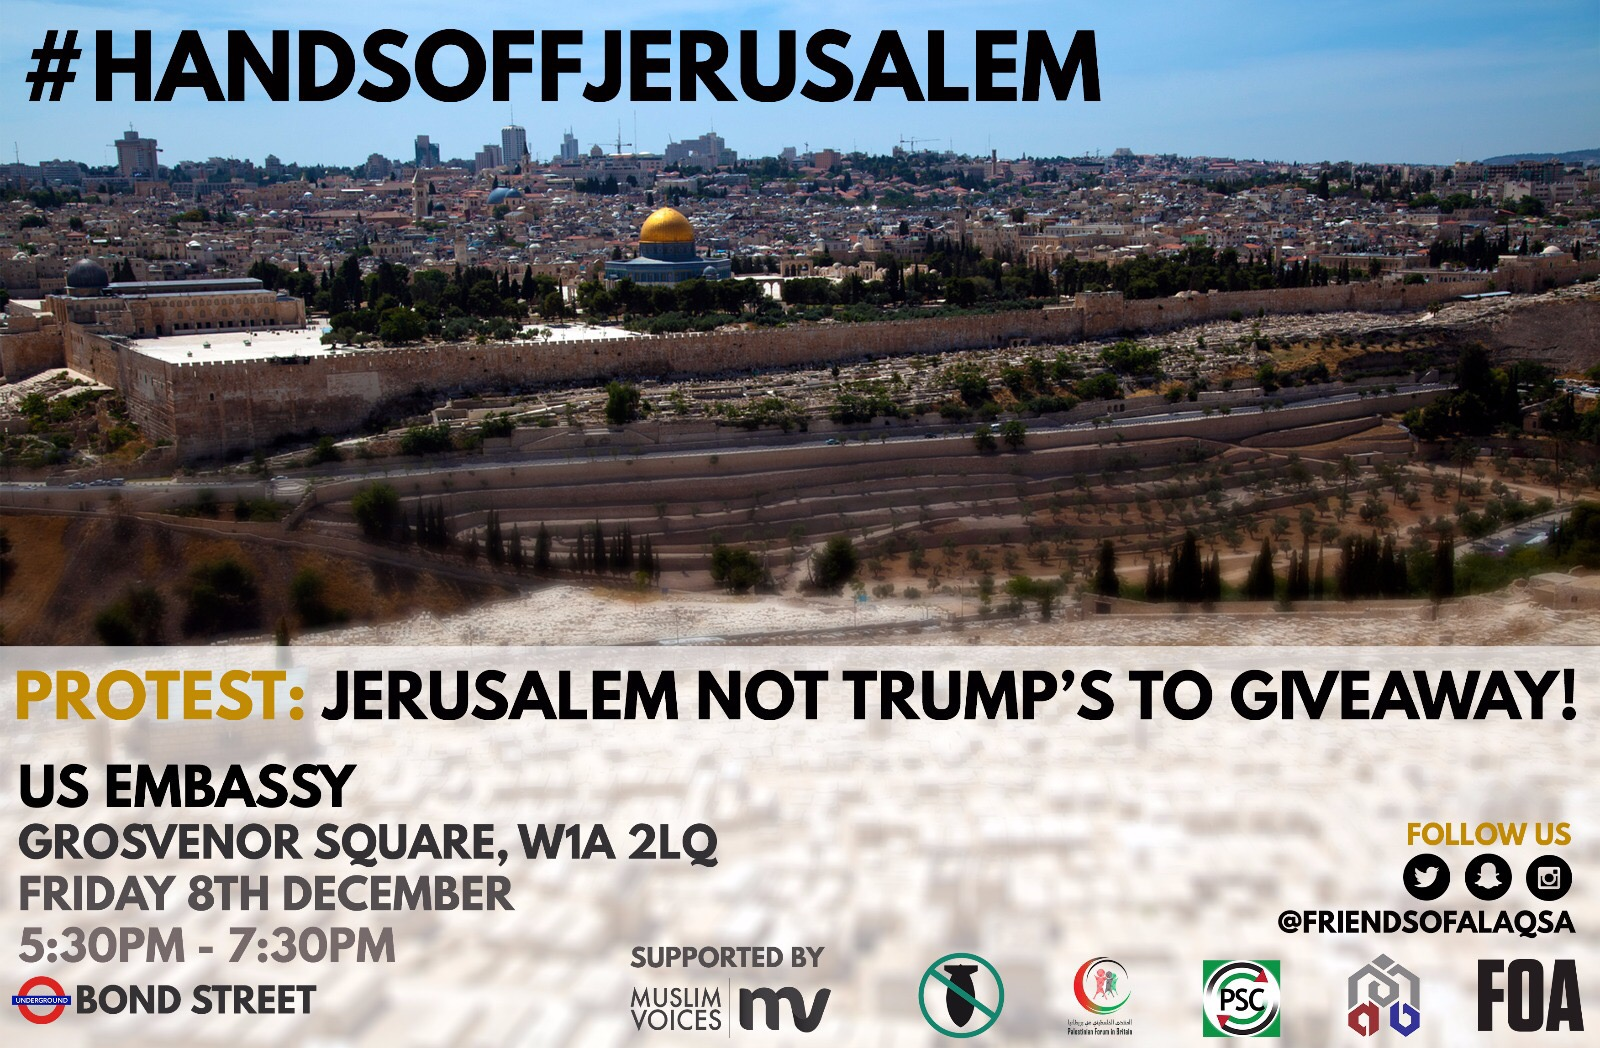 PROTEST: JERUSALEM AND MASJID AL-AQSA NOT TRUMP'S TO GIVEAWAY!